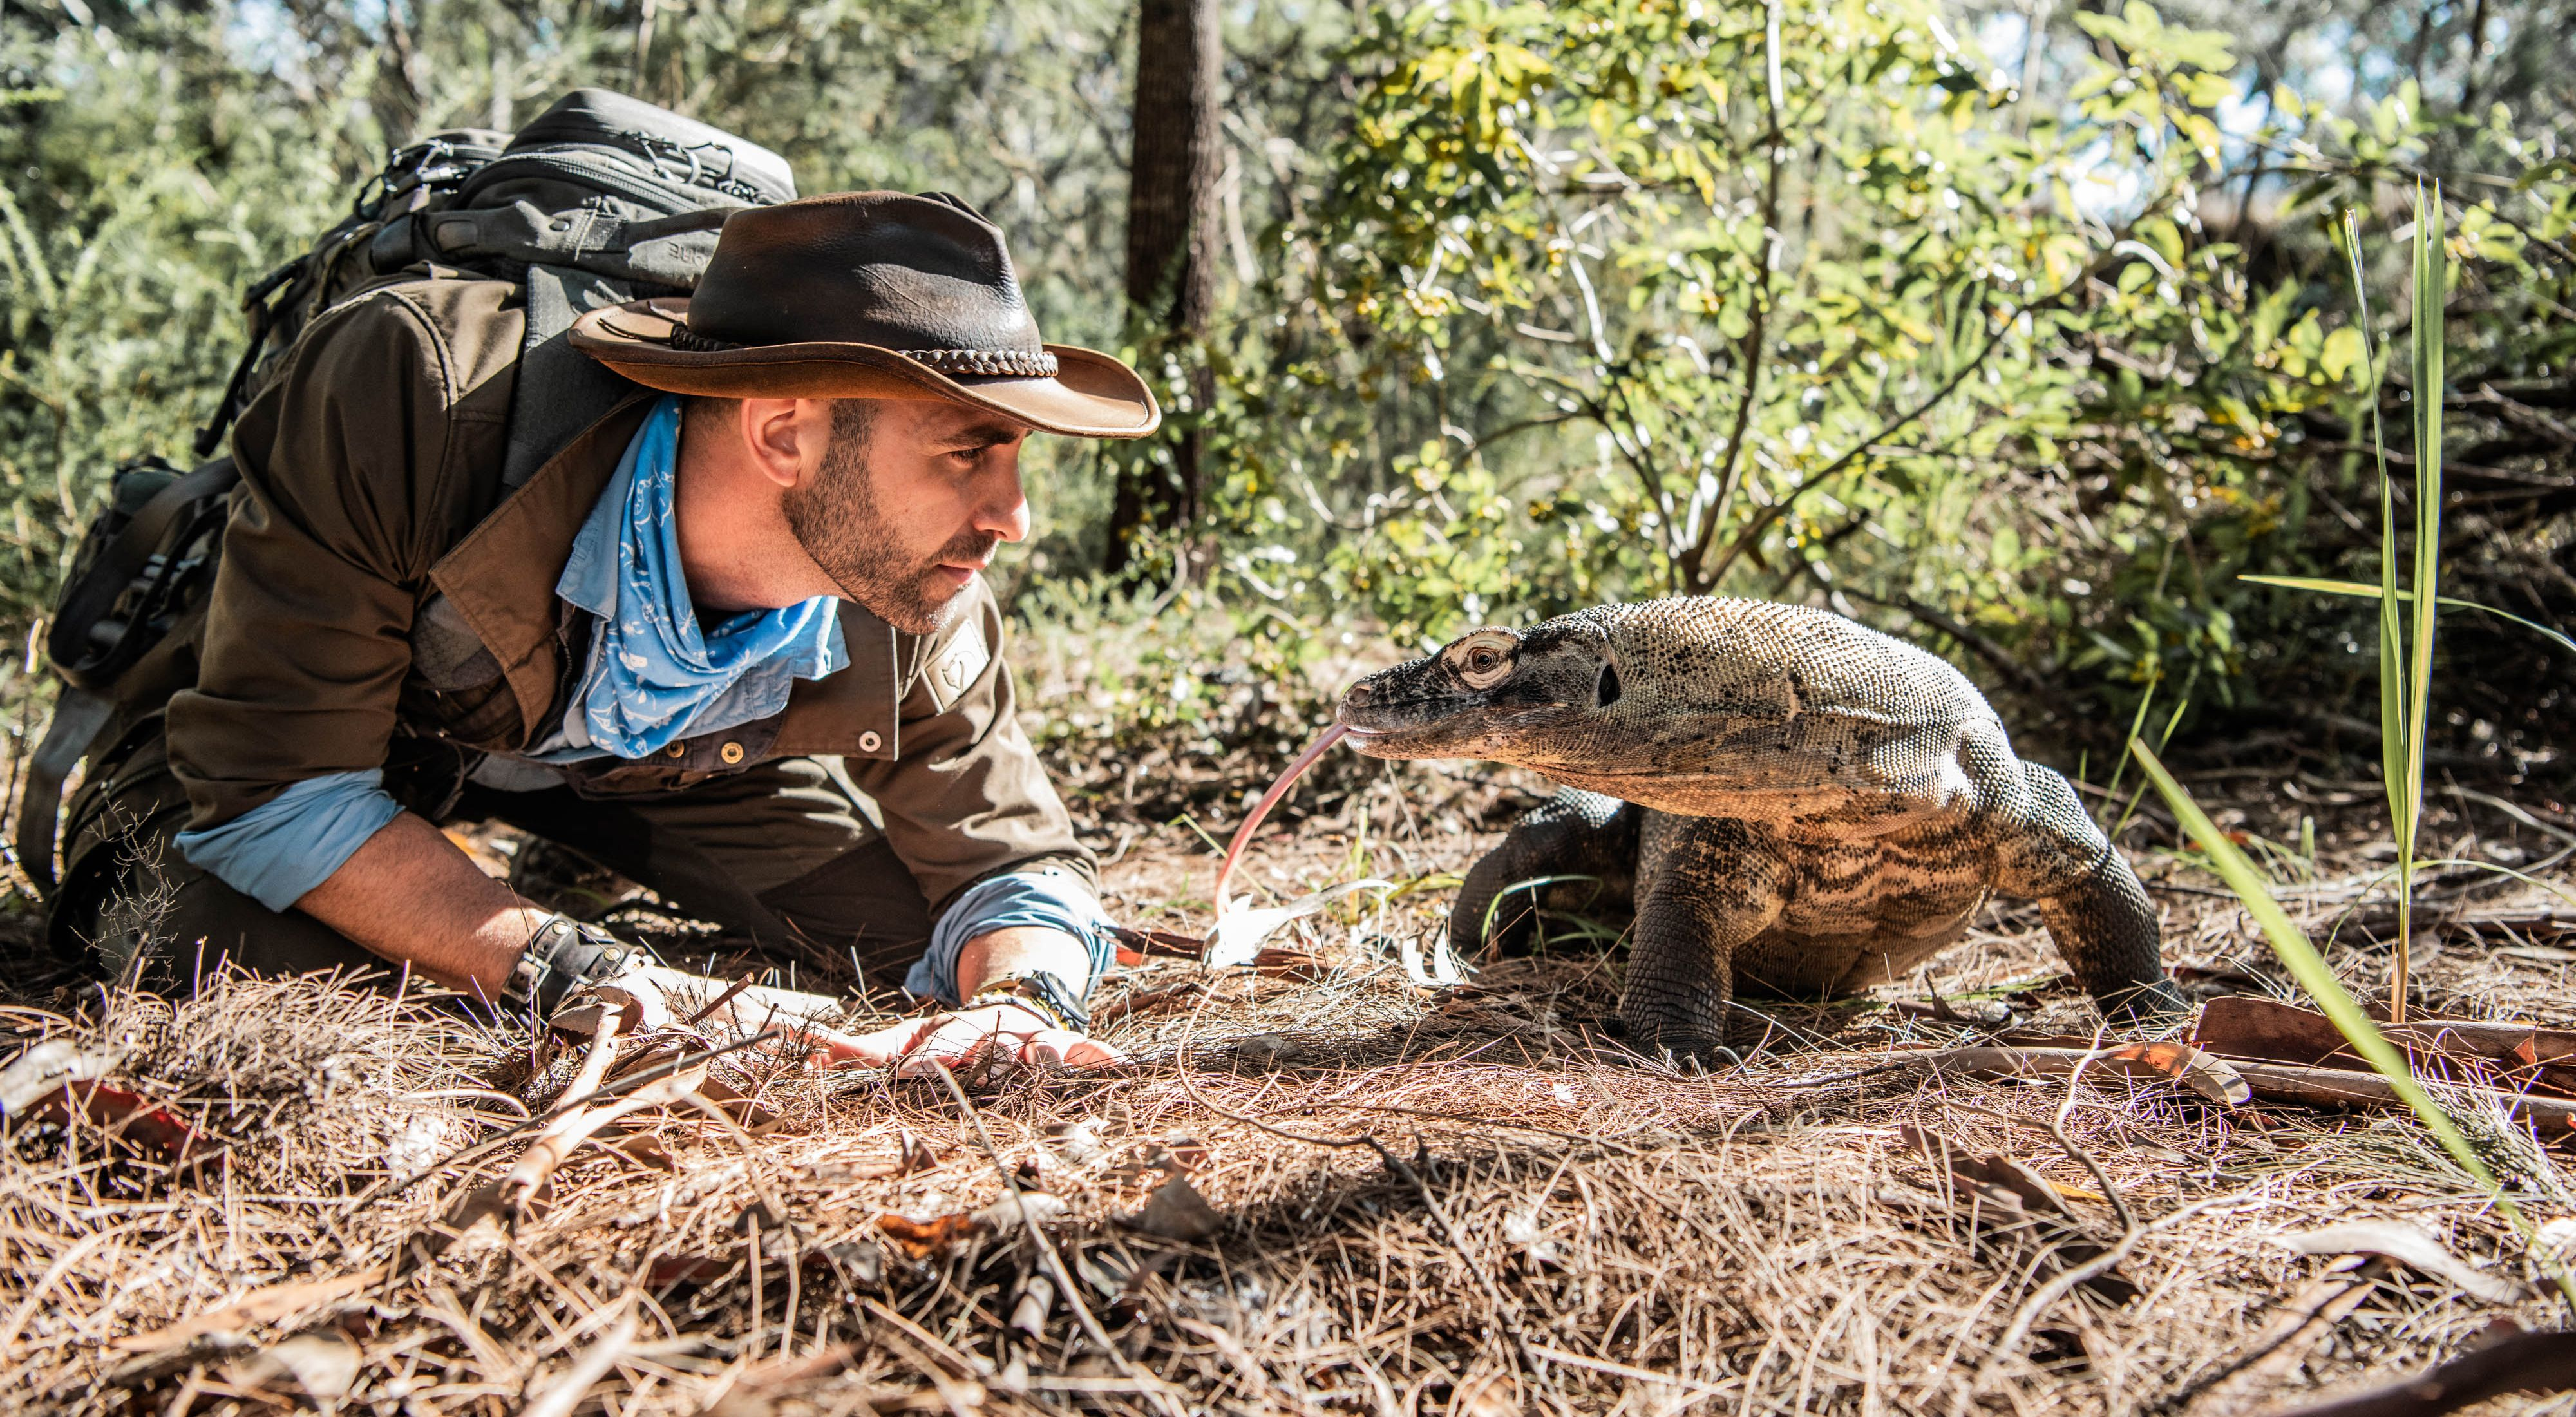 Coyote Peterson in the wild